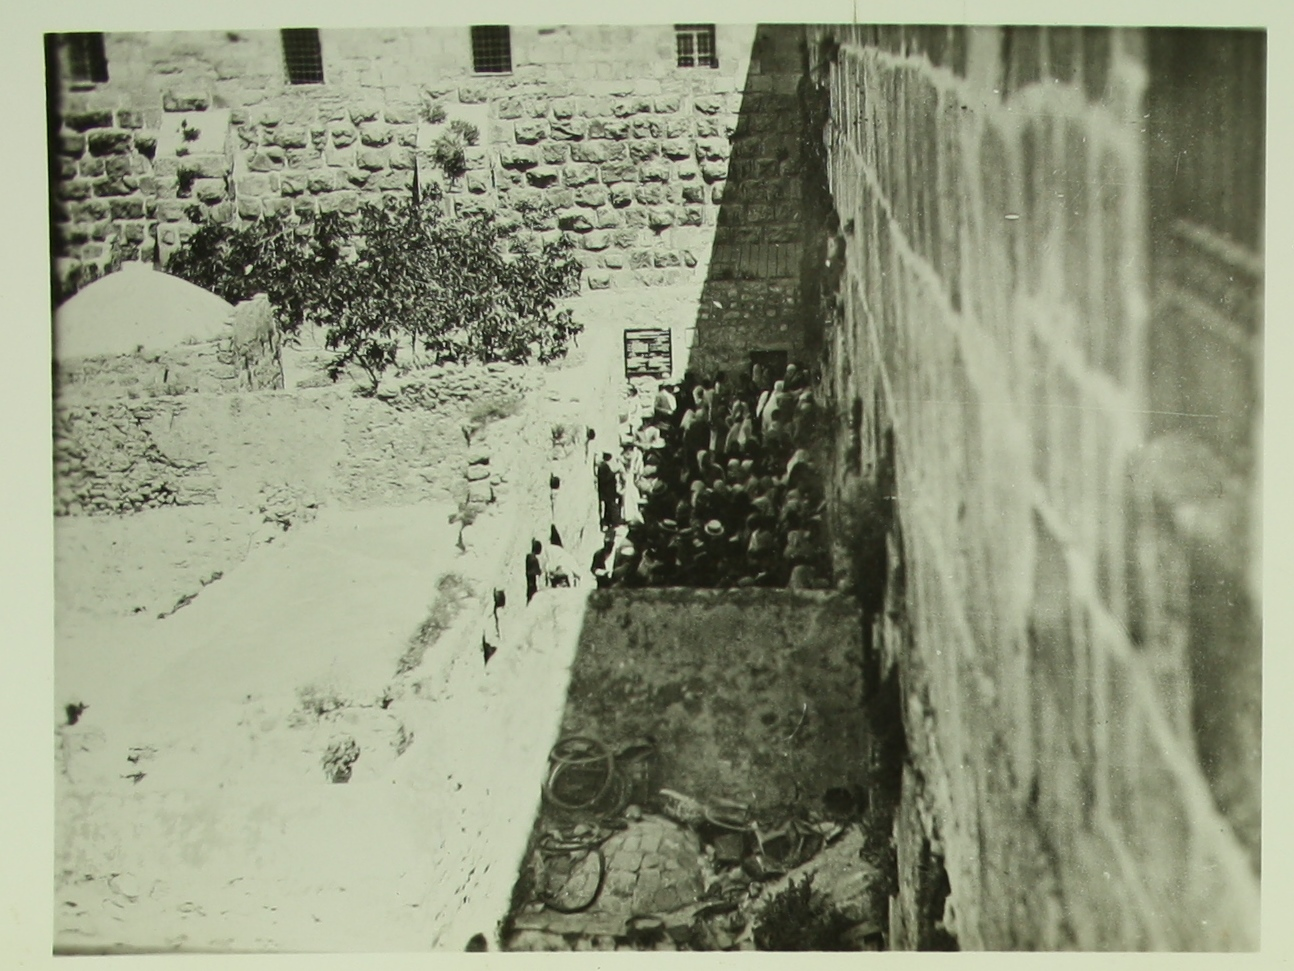 Historical images of the Western Wall - 1920 C SR 016.JPG